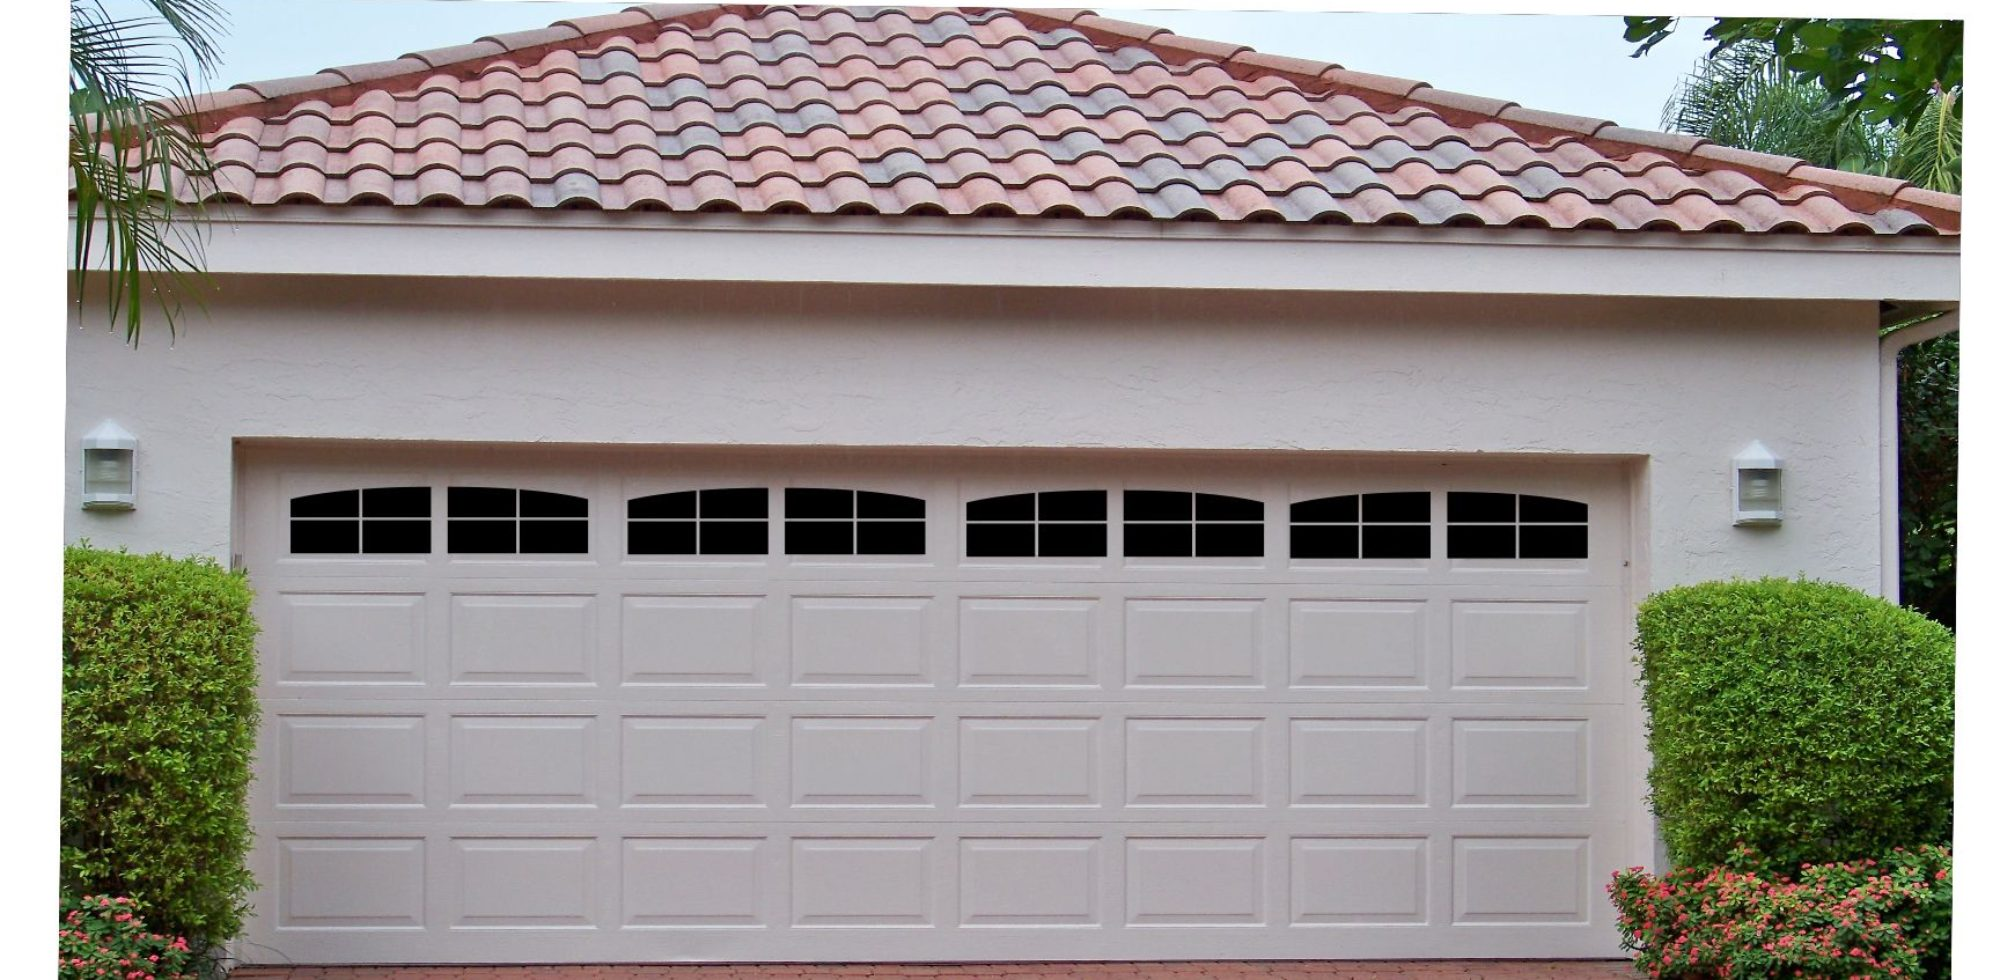 Carriage House Style Faux Window Garage Door ... & Carriage House Style Faux Window Garage Door Vinyl Decals \u2013 Garage ... Pezcame.Com